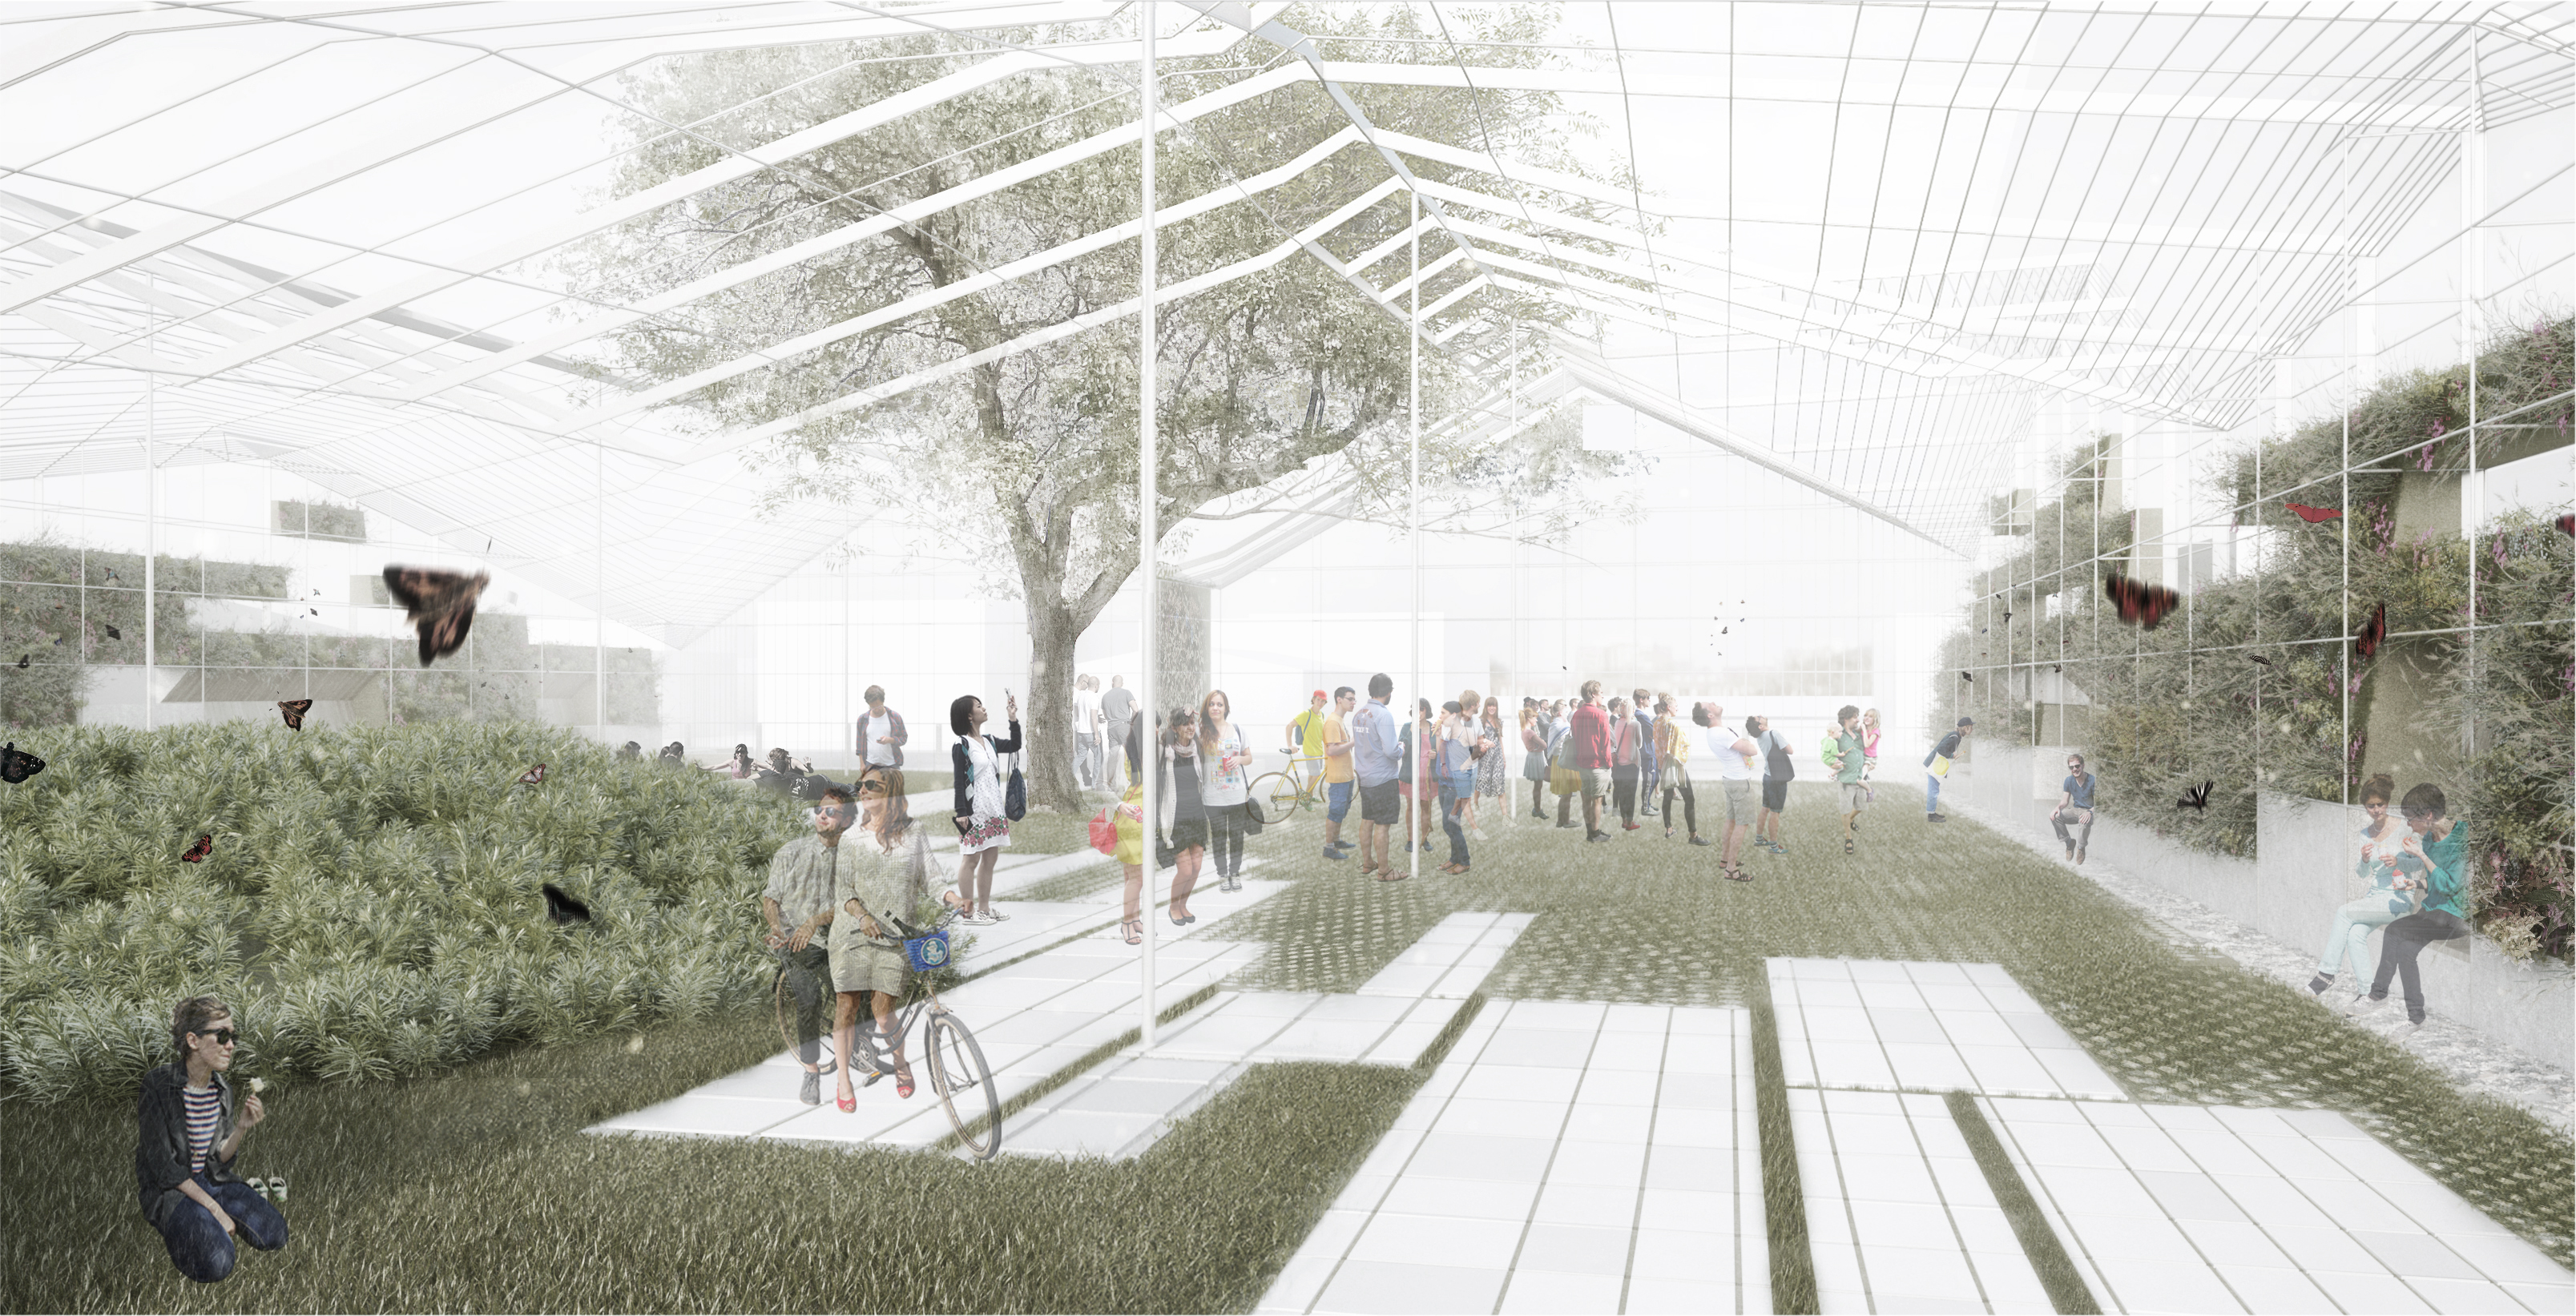 A greenhouseinspired park to bring new public space to